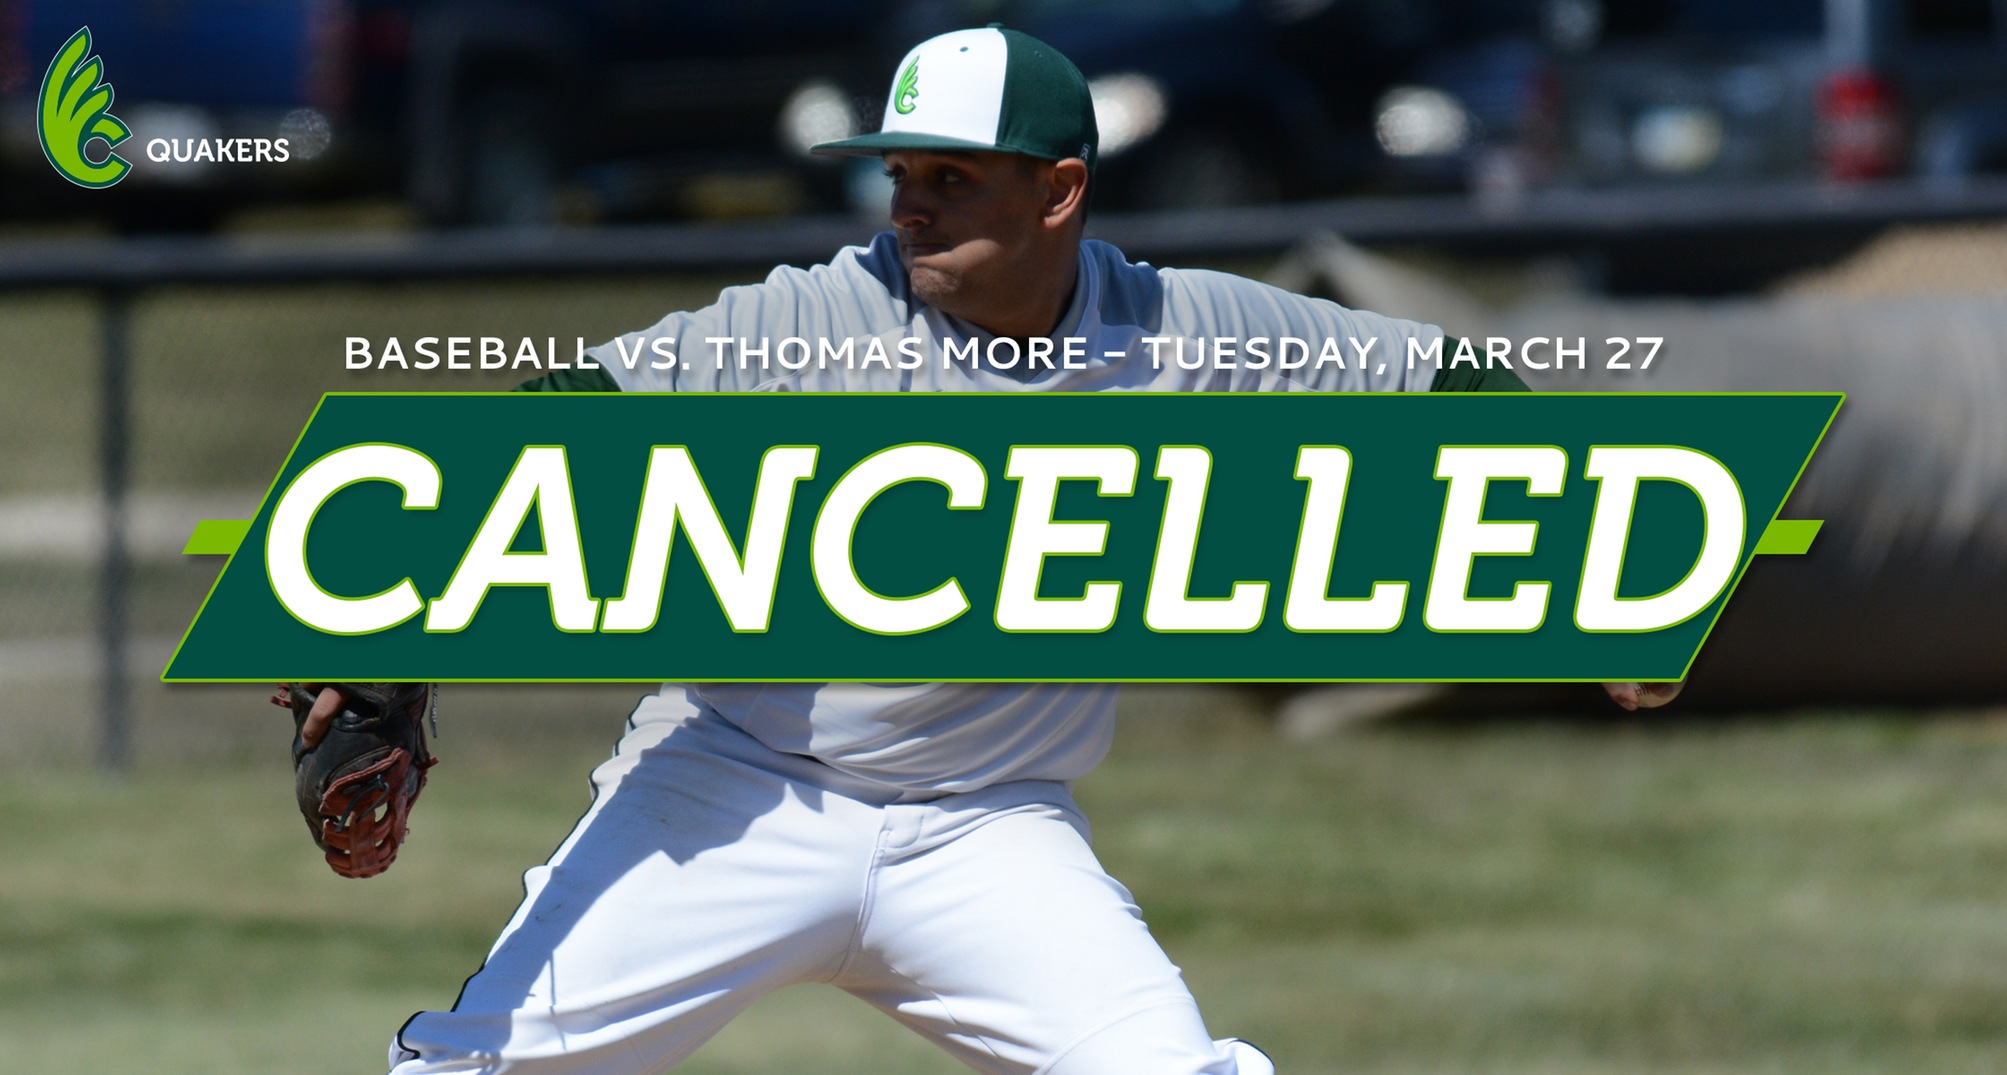 Baseball Game Versus Thomas More Cancelled